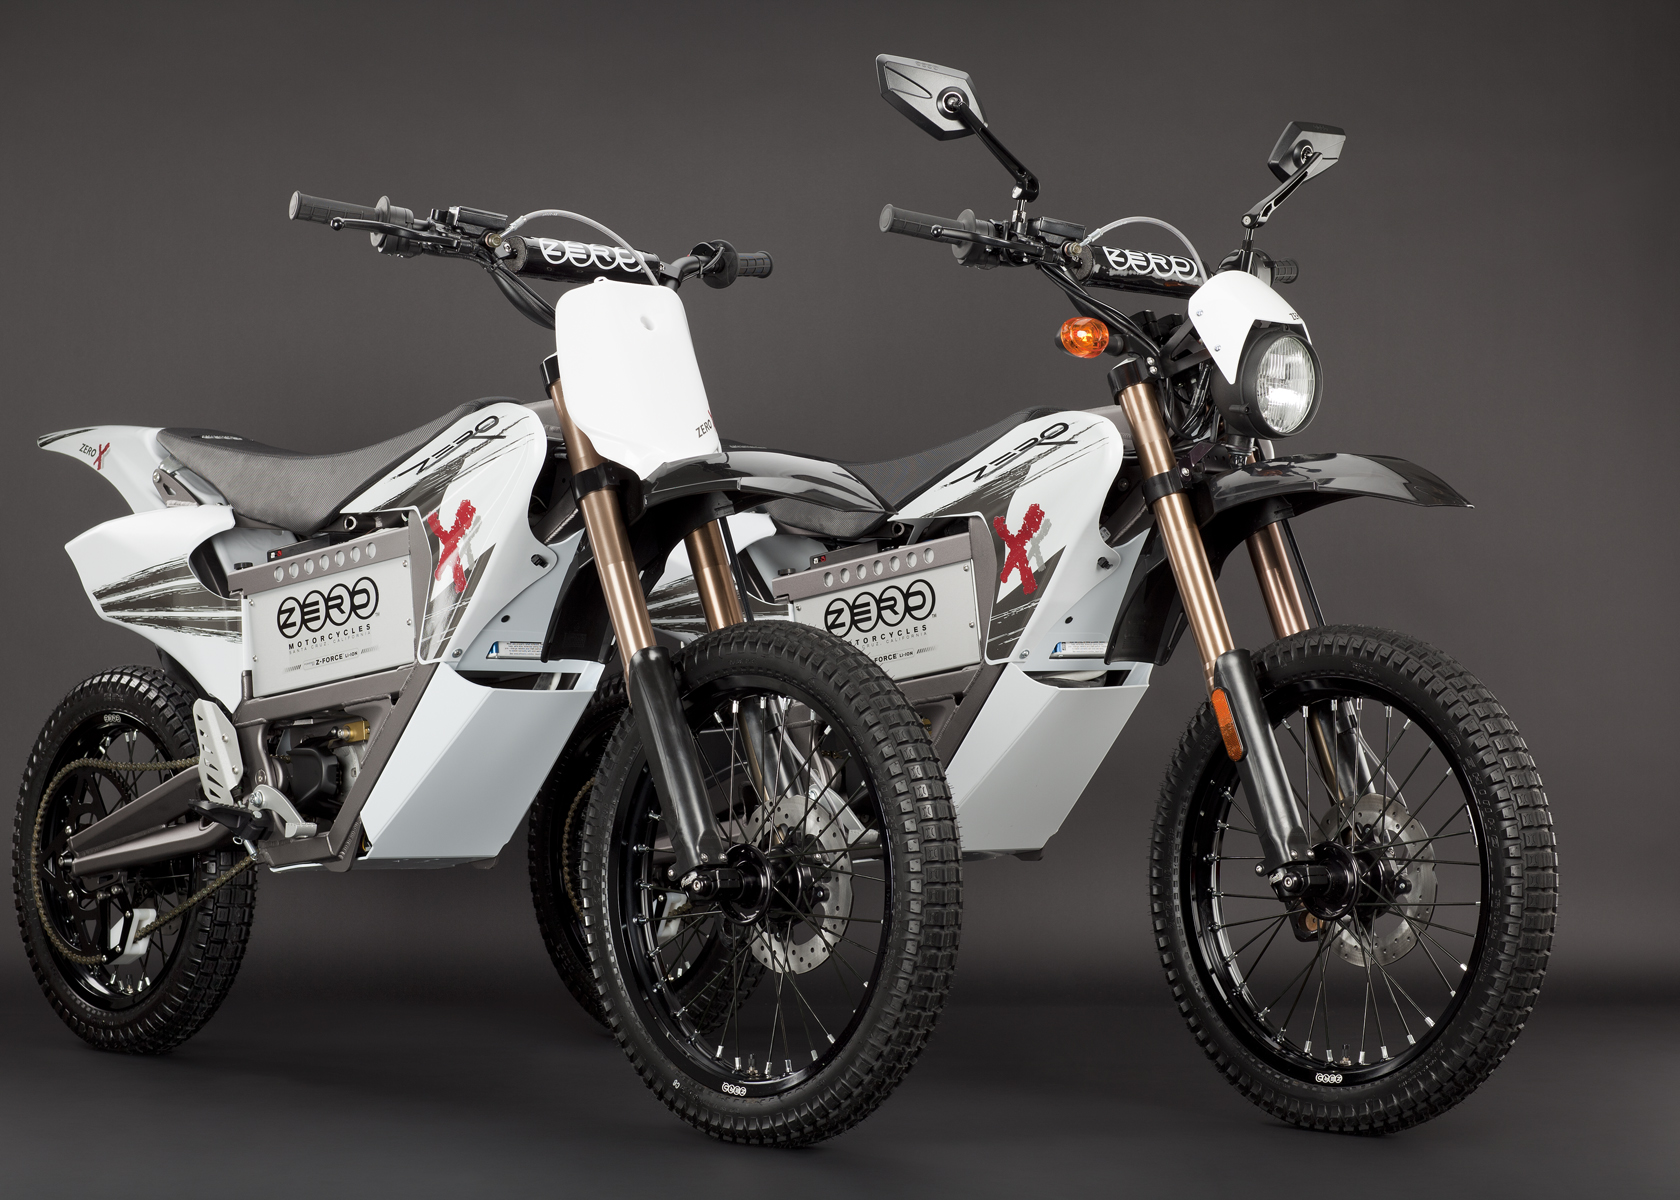 2011 Zero X Electric Motorcycle: Pair